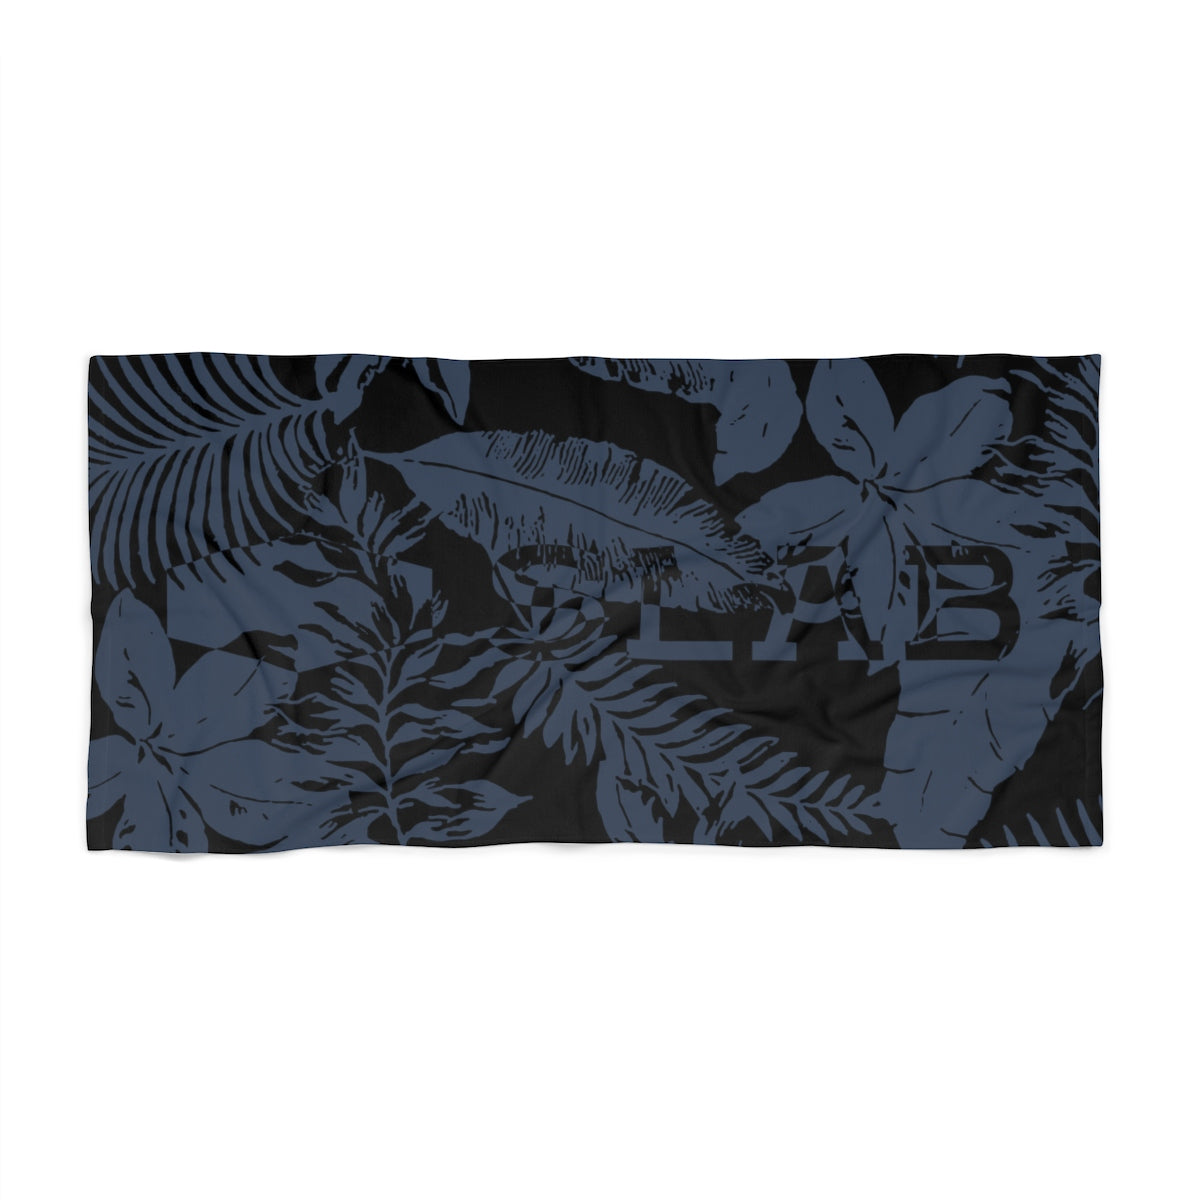 SLAB Palm Midnight Beach Towel